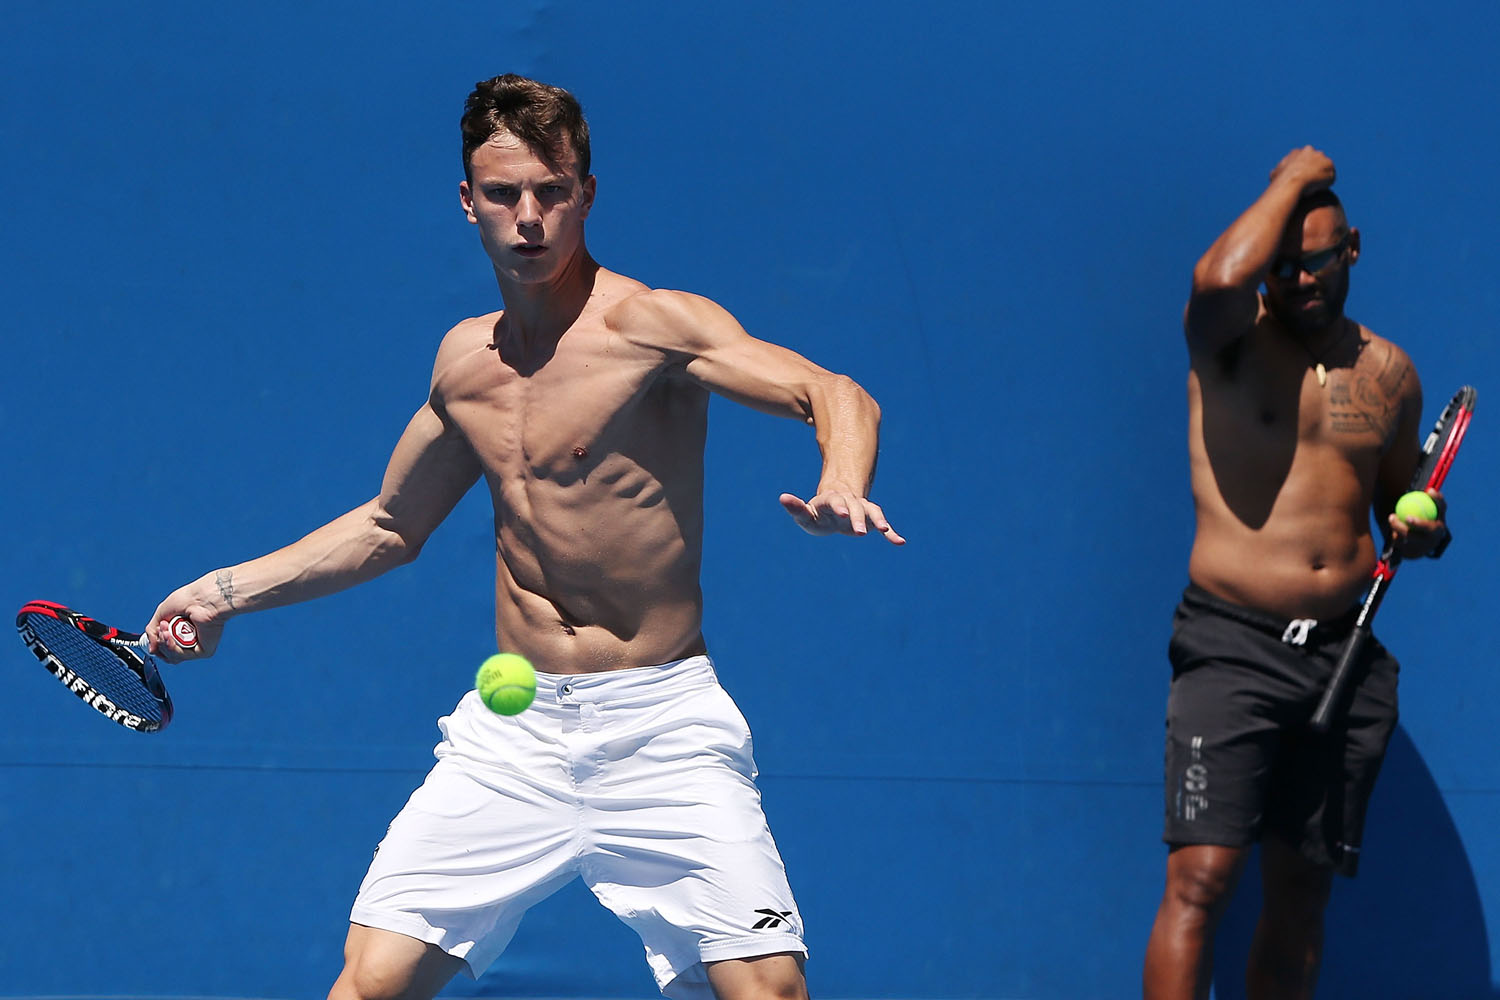 Hungarian tennis pro Marton Fuscovics trains ahead of the 2014 Australian Open at Melbourne Park in January 2014.